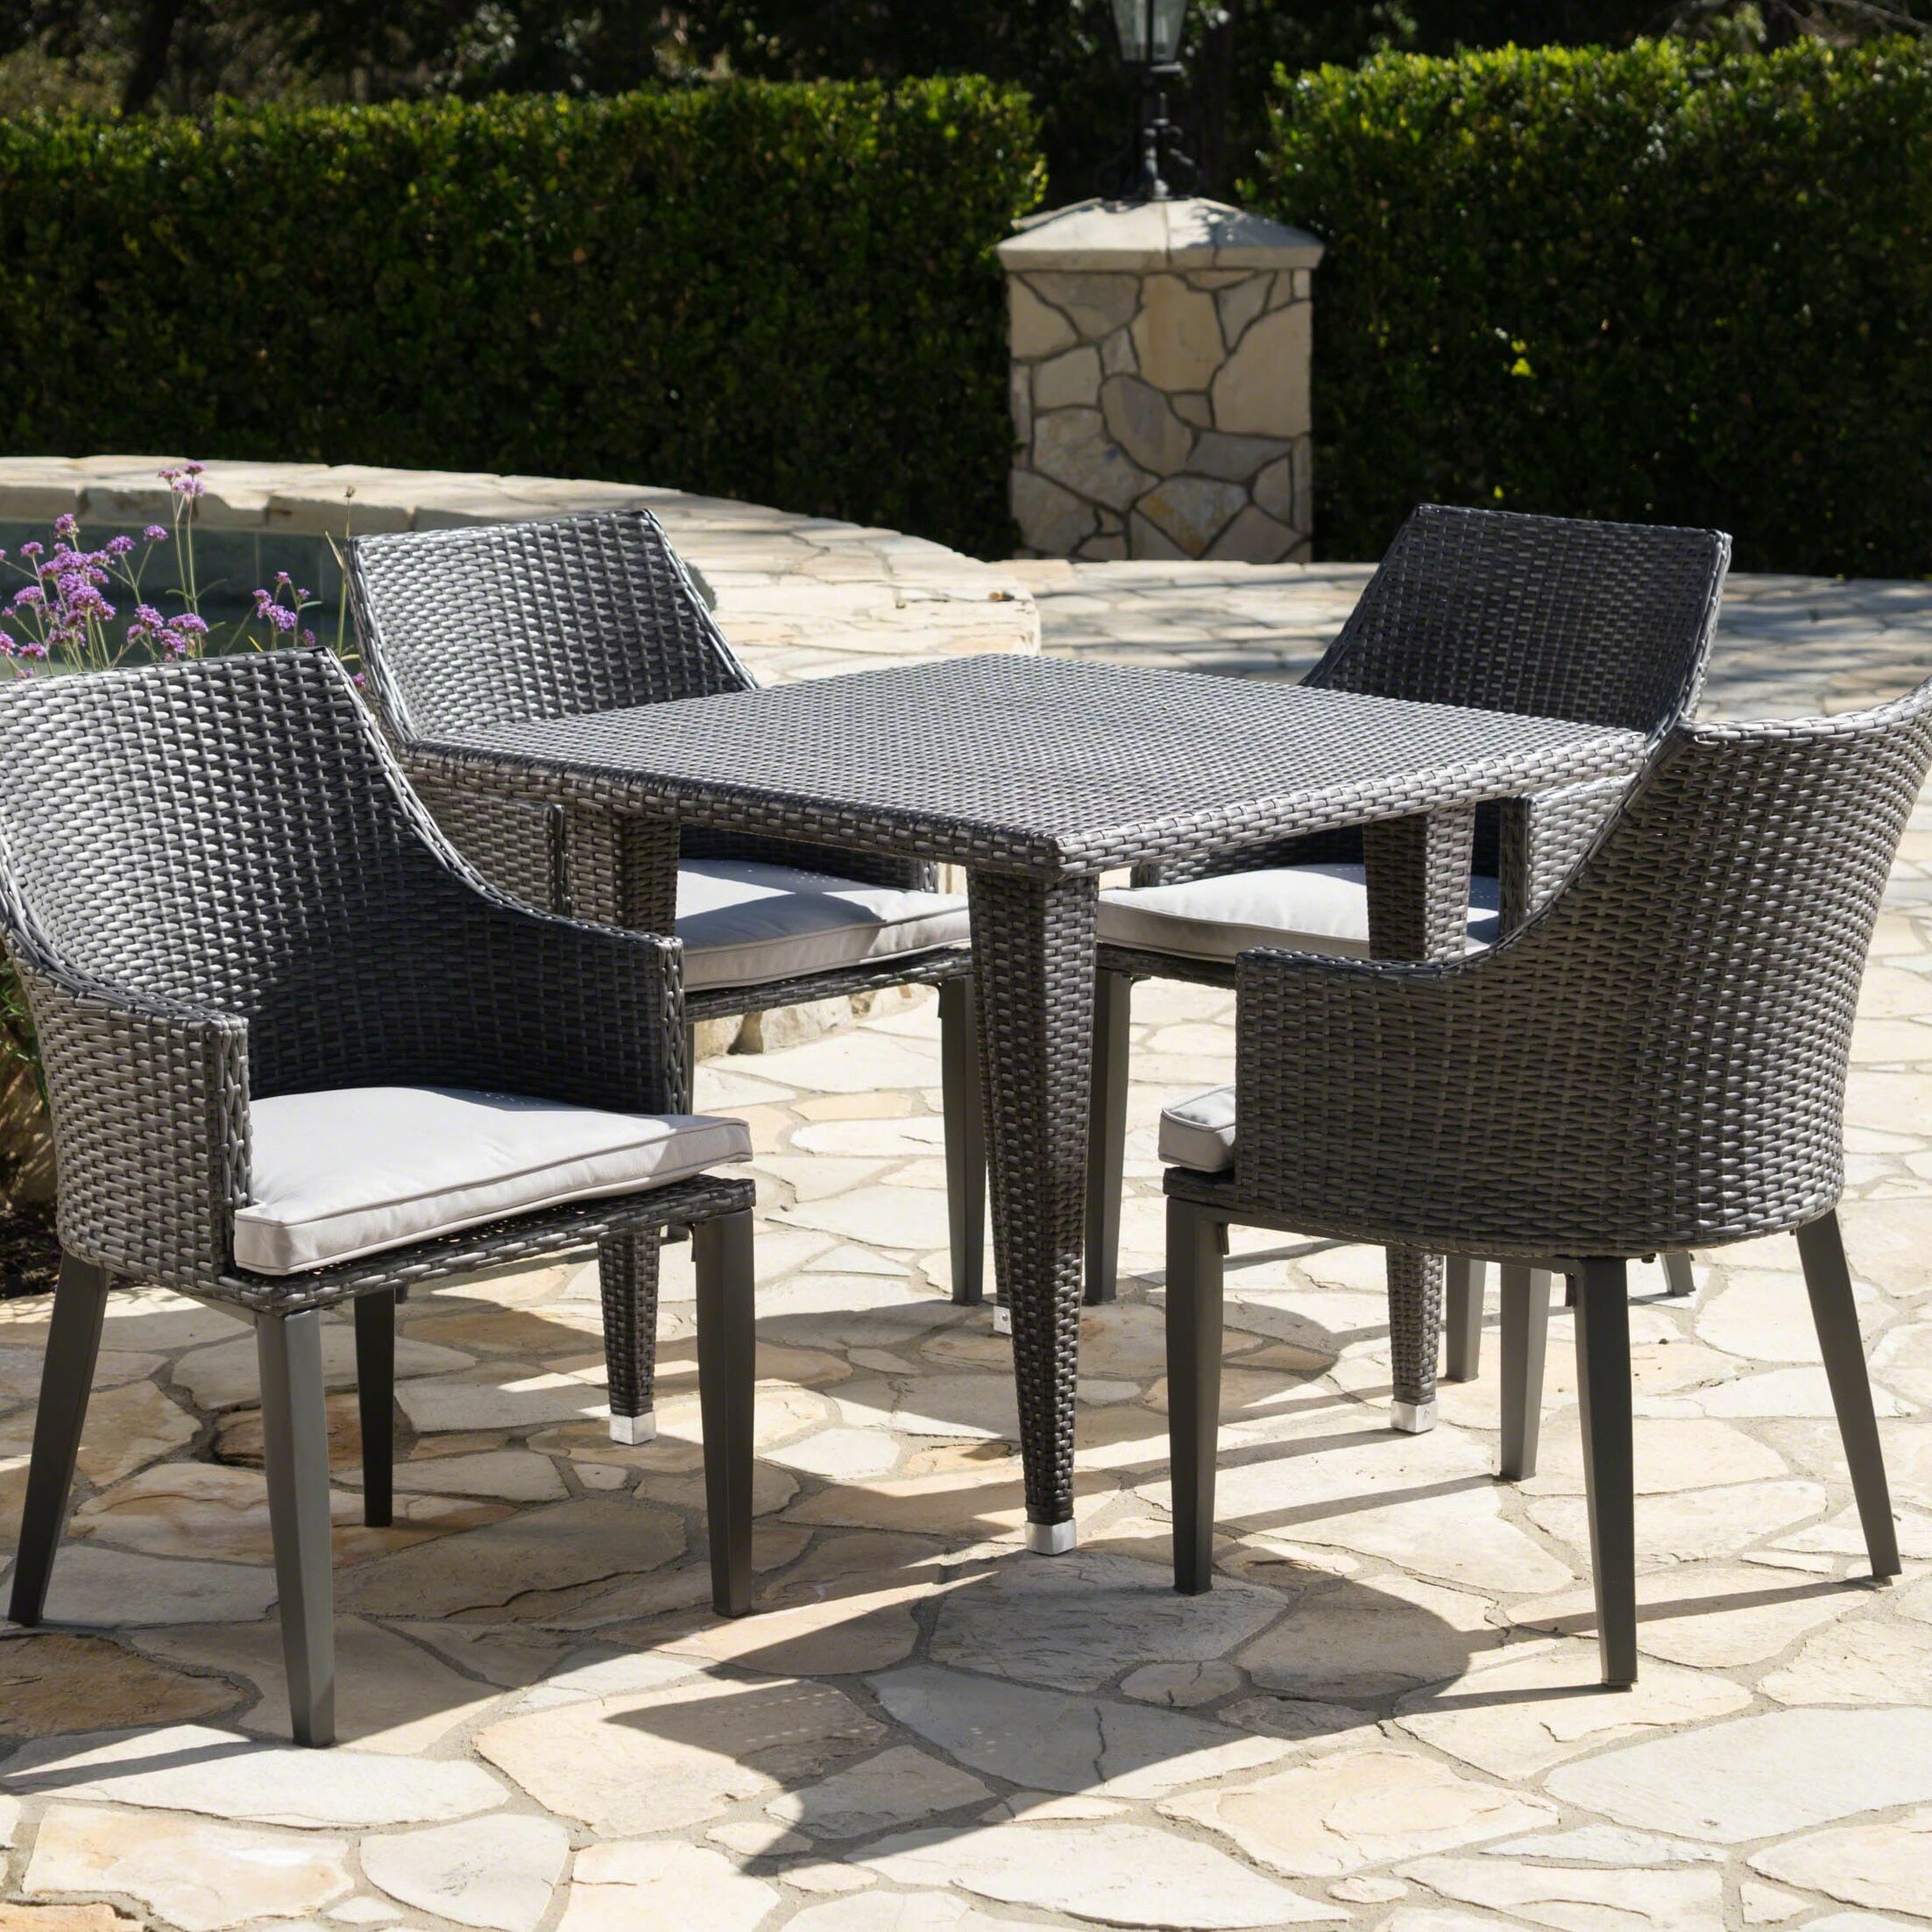 Schall 5 Piece Dining Set with Cushions Cushion Color: Light Gray